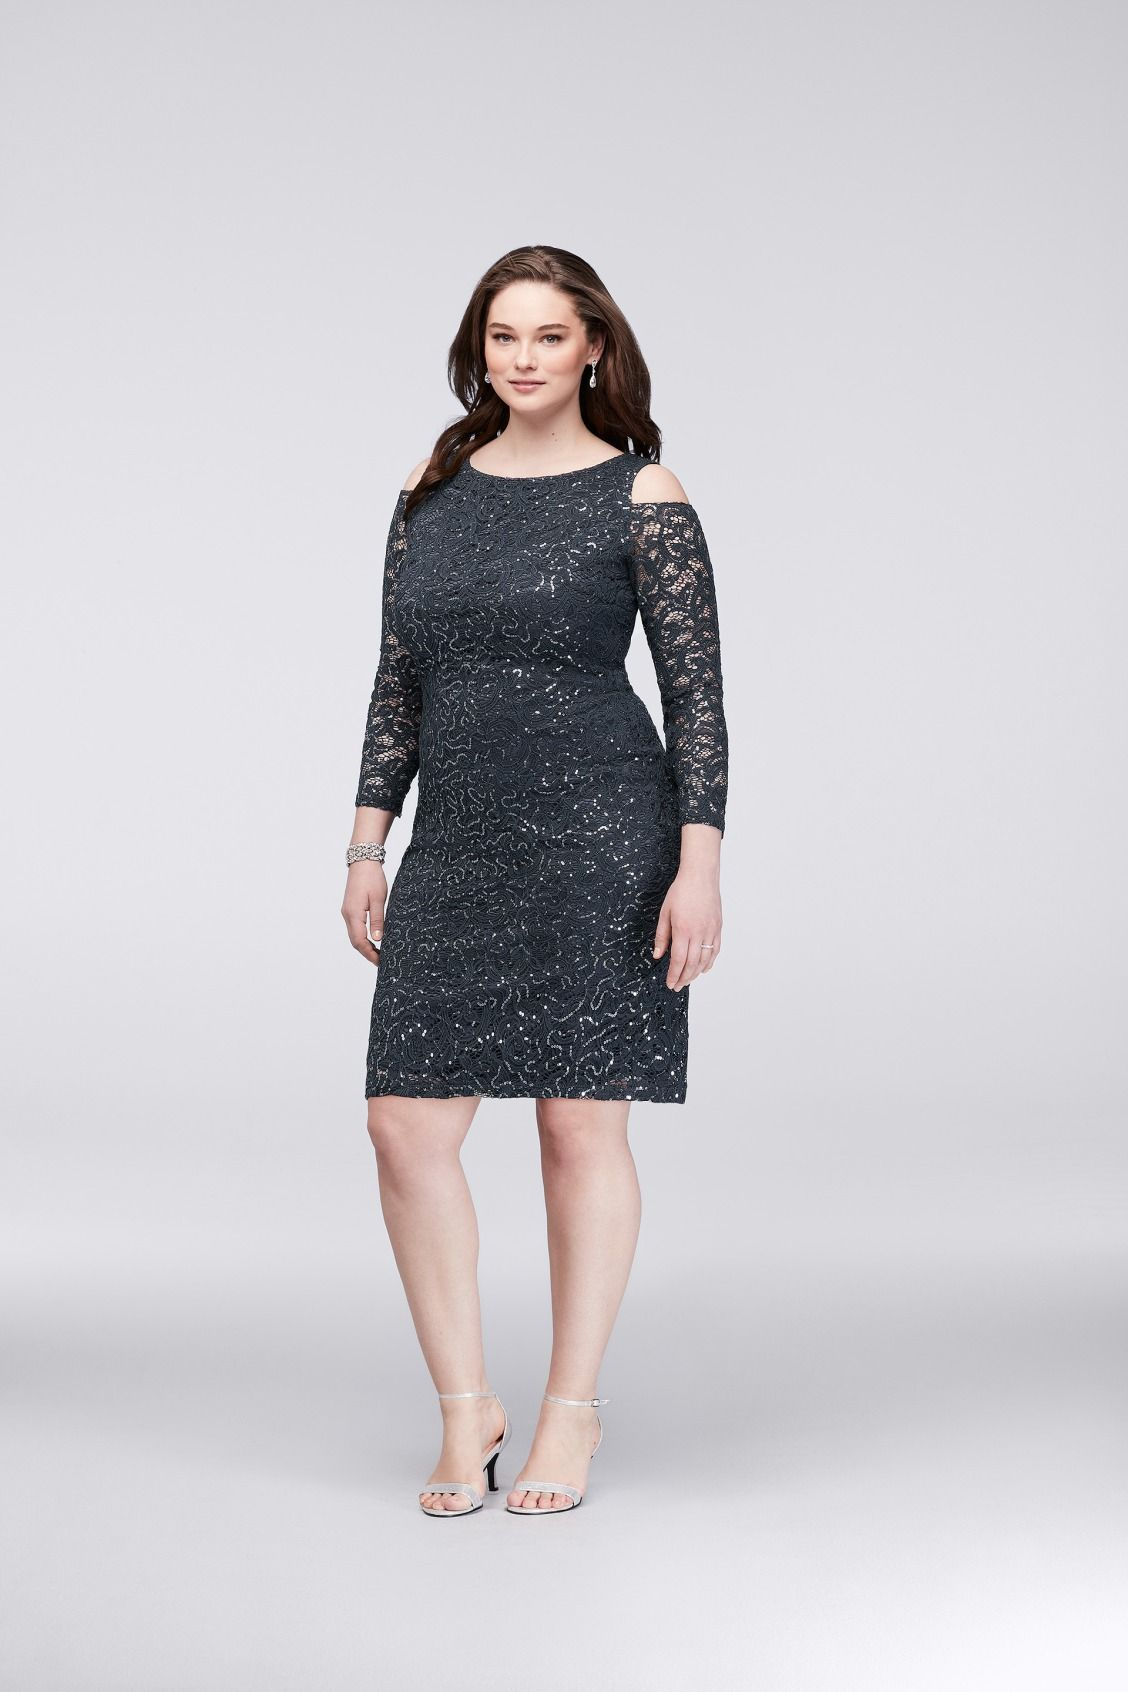 831937dd438 Cold-Shoulder Lace Plus Size Cocktail Mother of the Bride Dress available  at David s Bridal